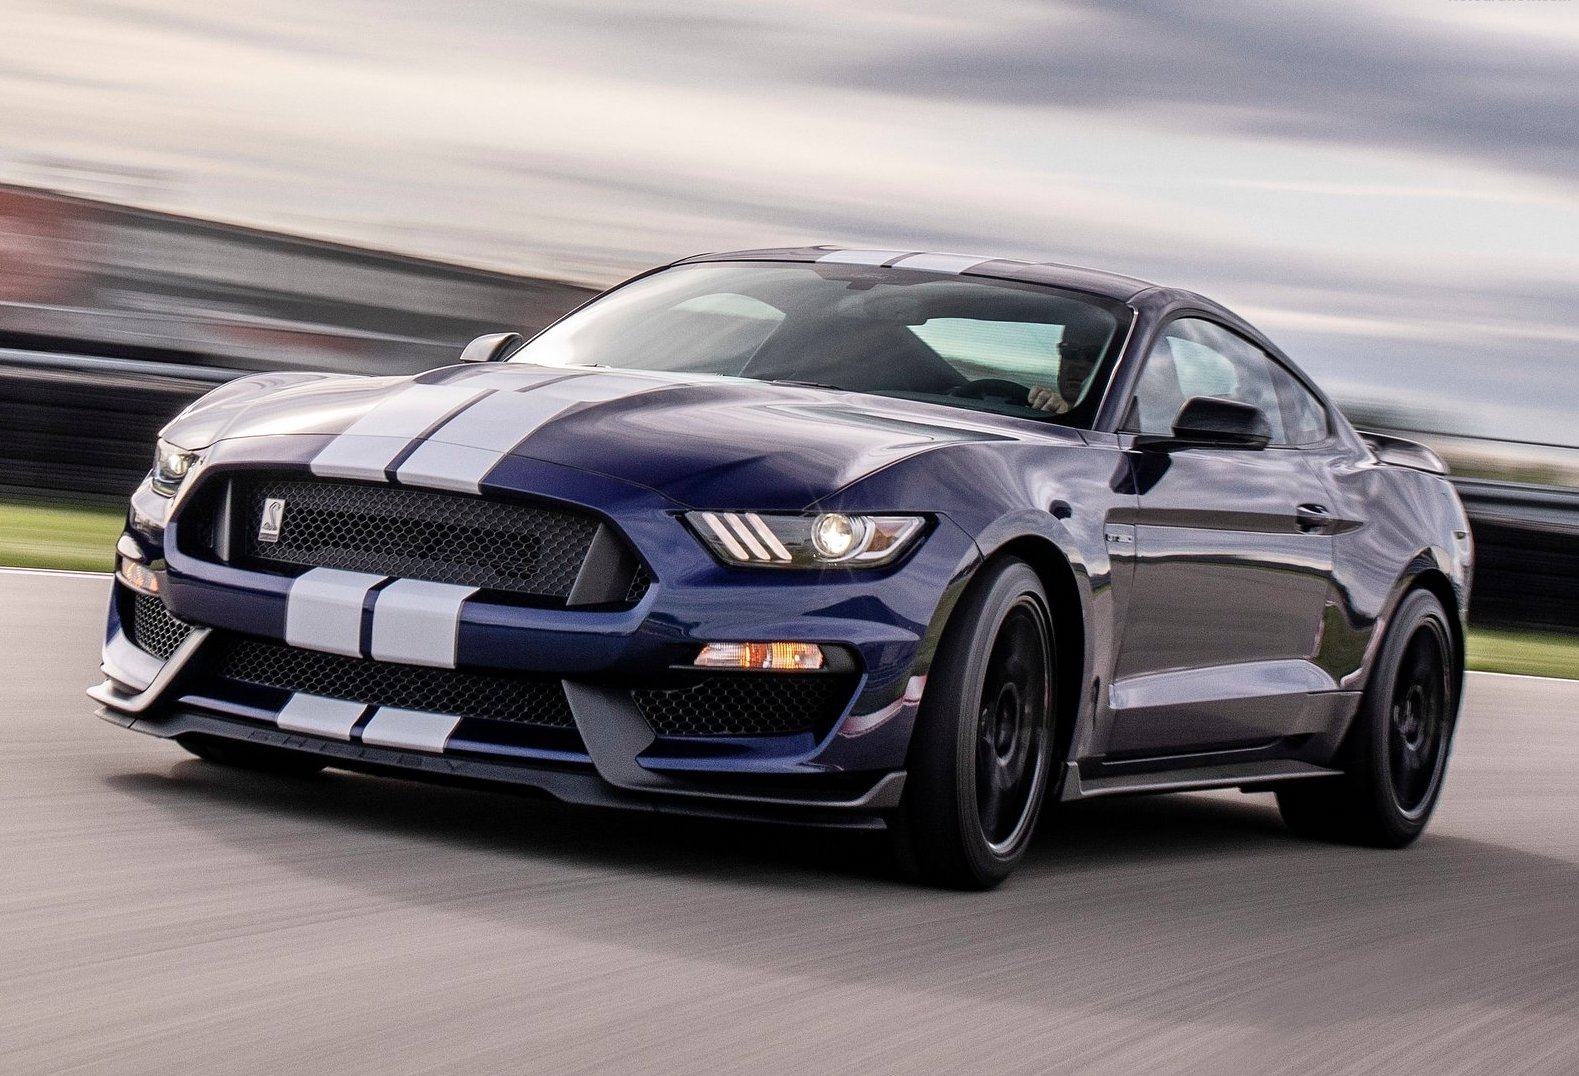 2019 Ford Mustang GT350 revealed | PerformanceDrive